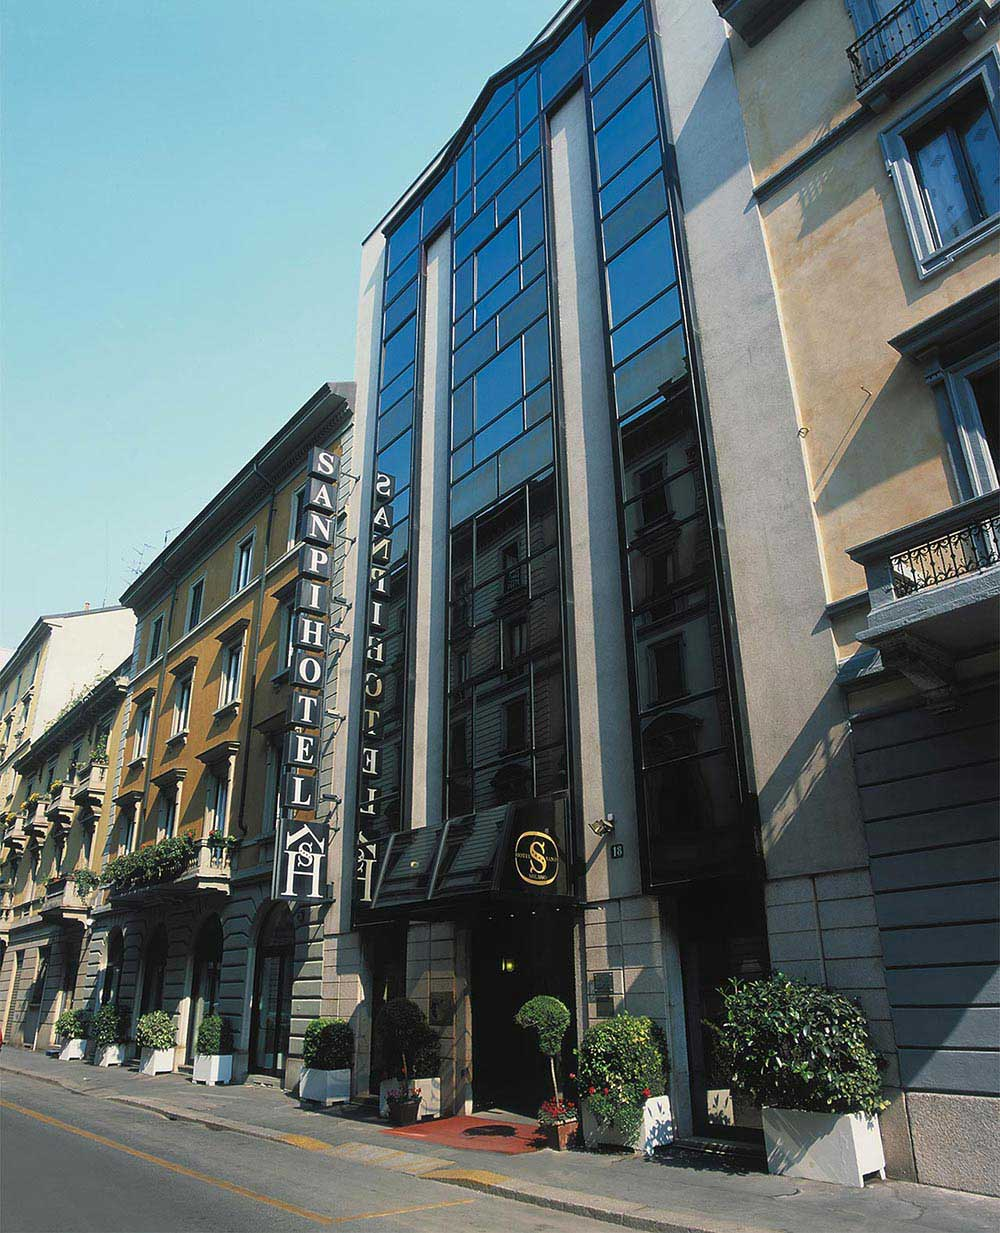 hotel sanpi milano boutique hotel in the center of milan